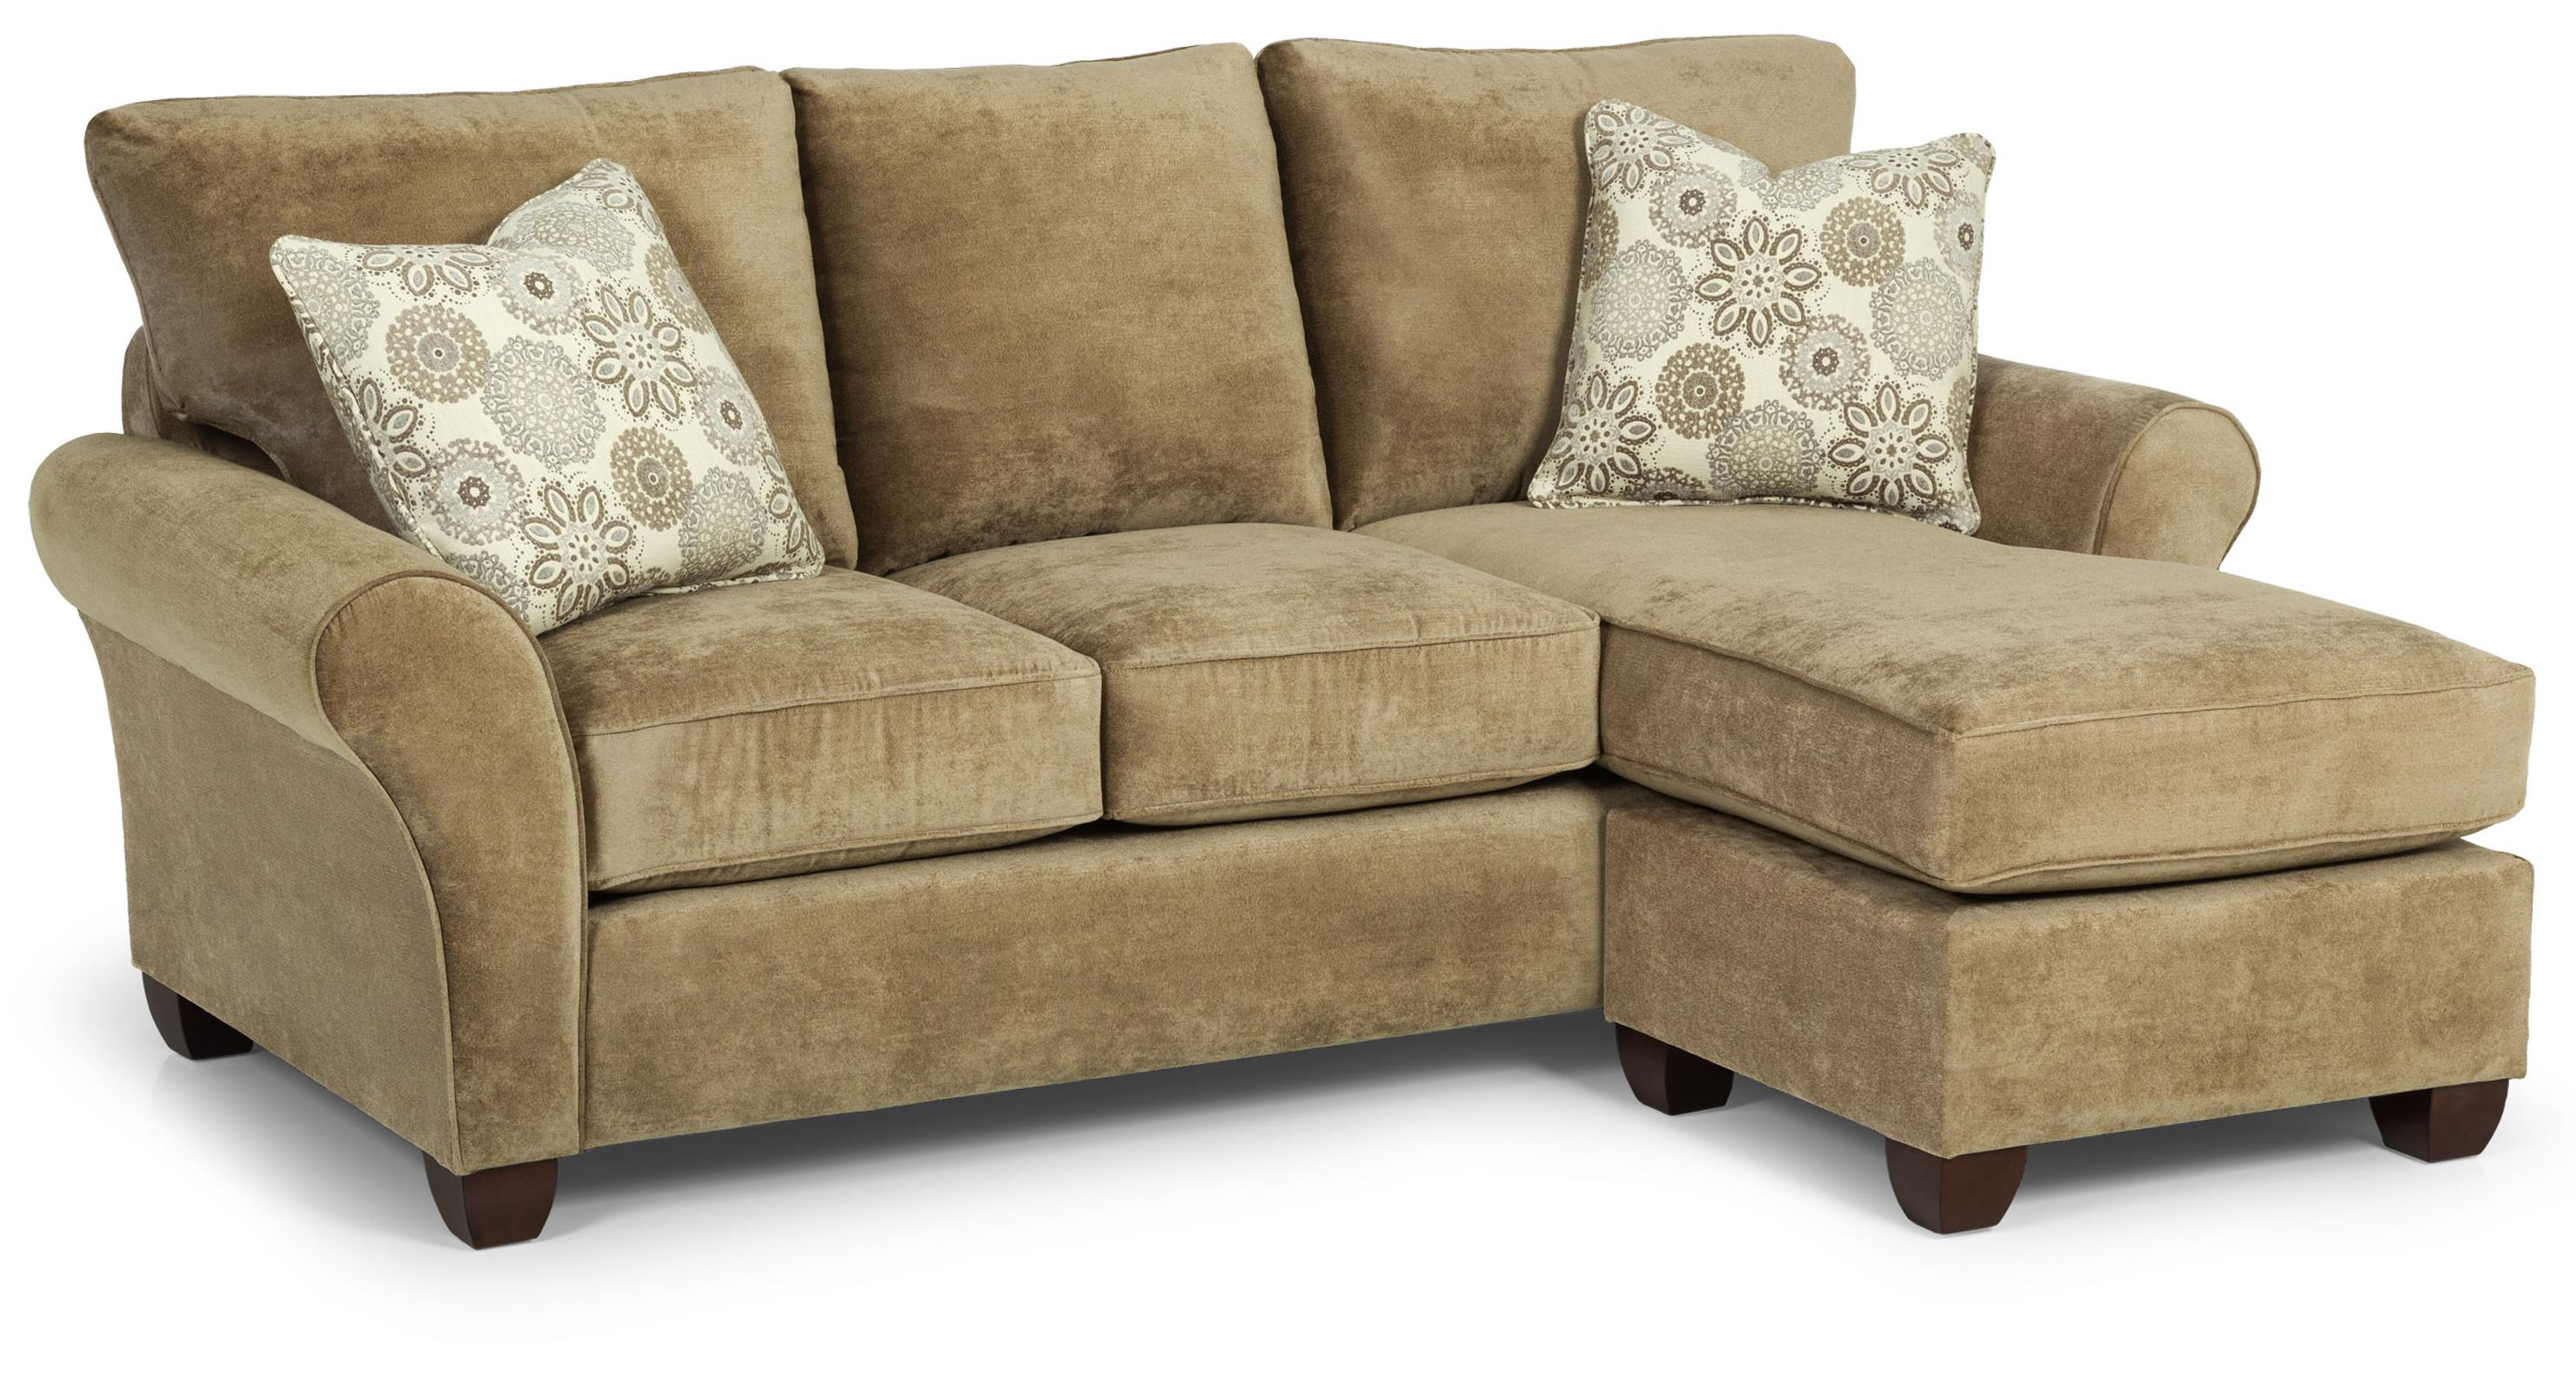 320 Queen Gel Chaise Sofa Sleeper by Stanton at Wilson's Furniture